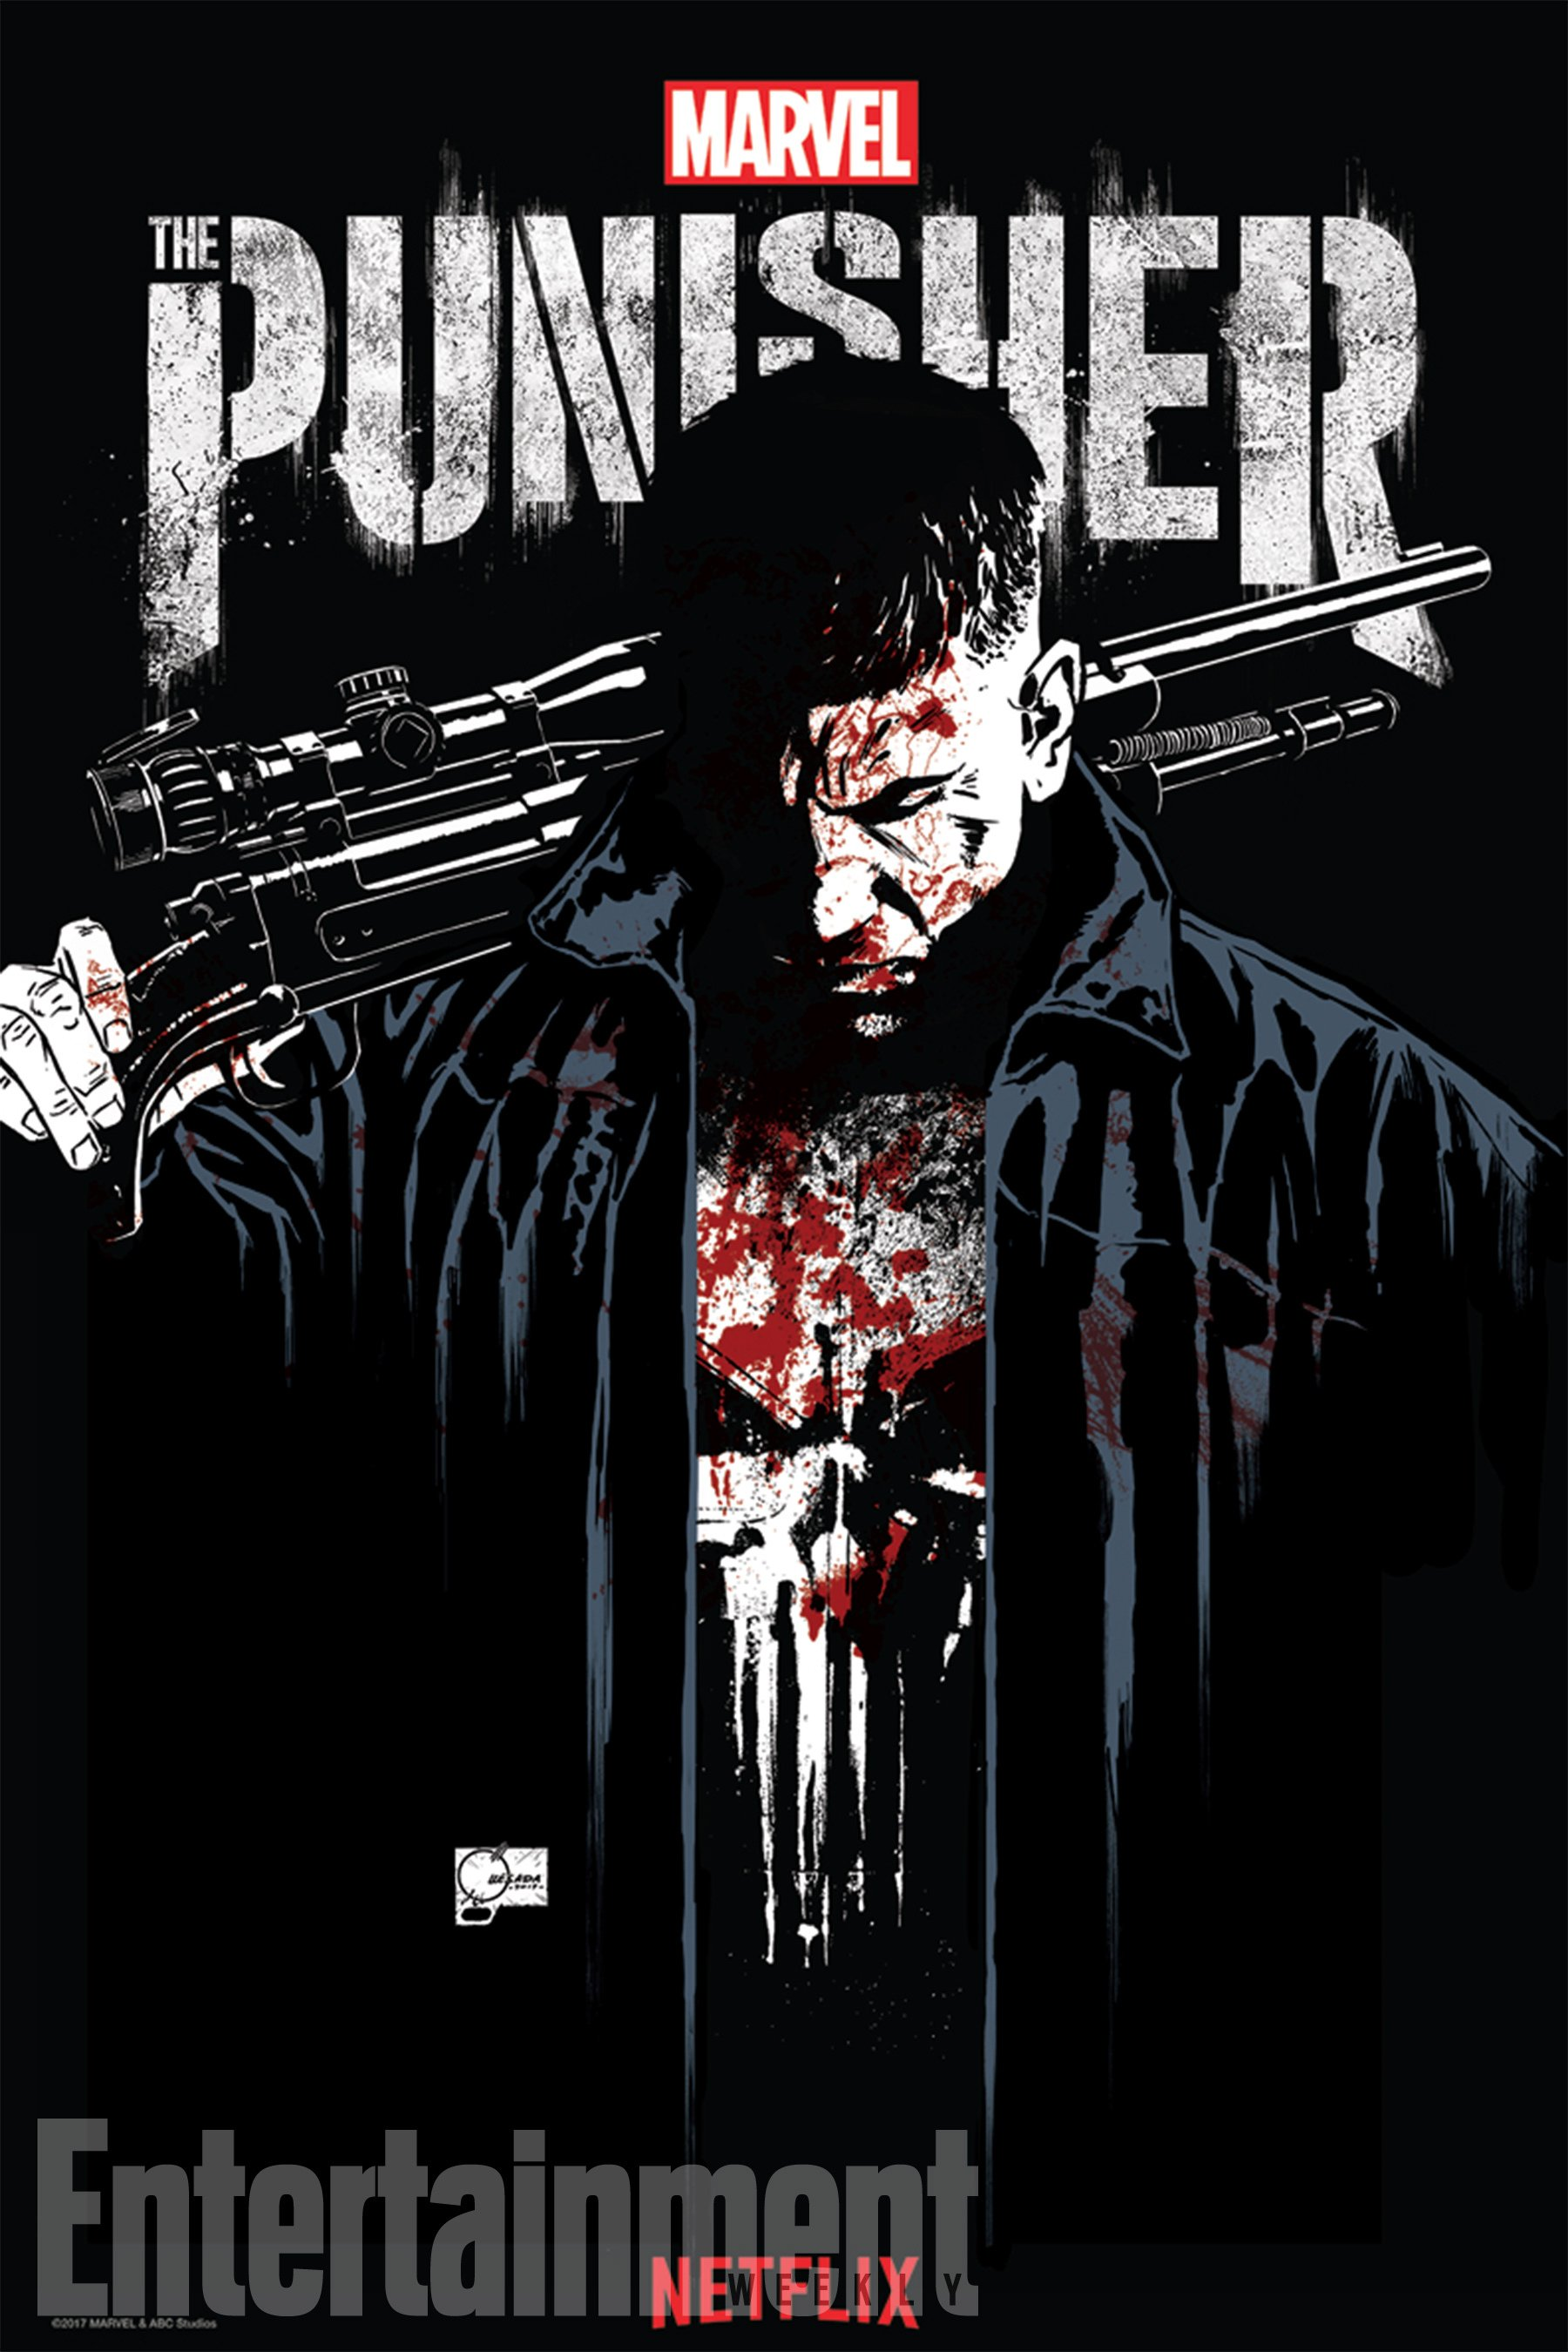 The Punisher: A Bloody Frank Castle Headlines SDCC Poster